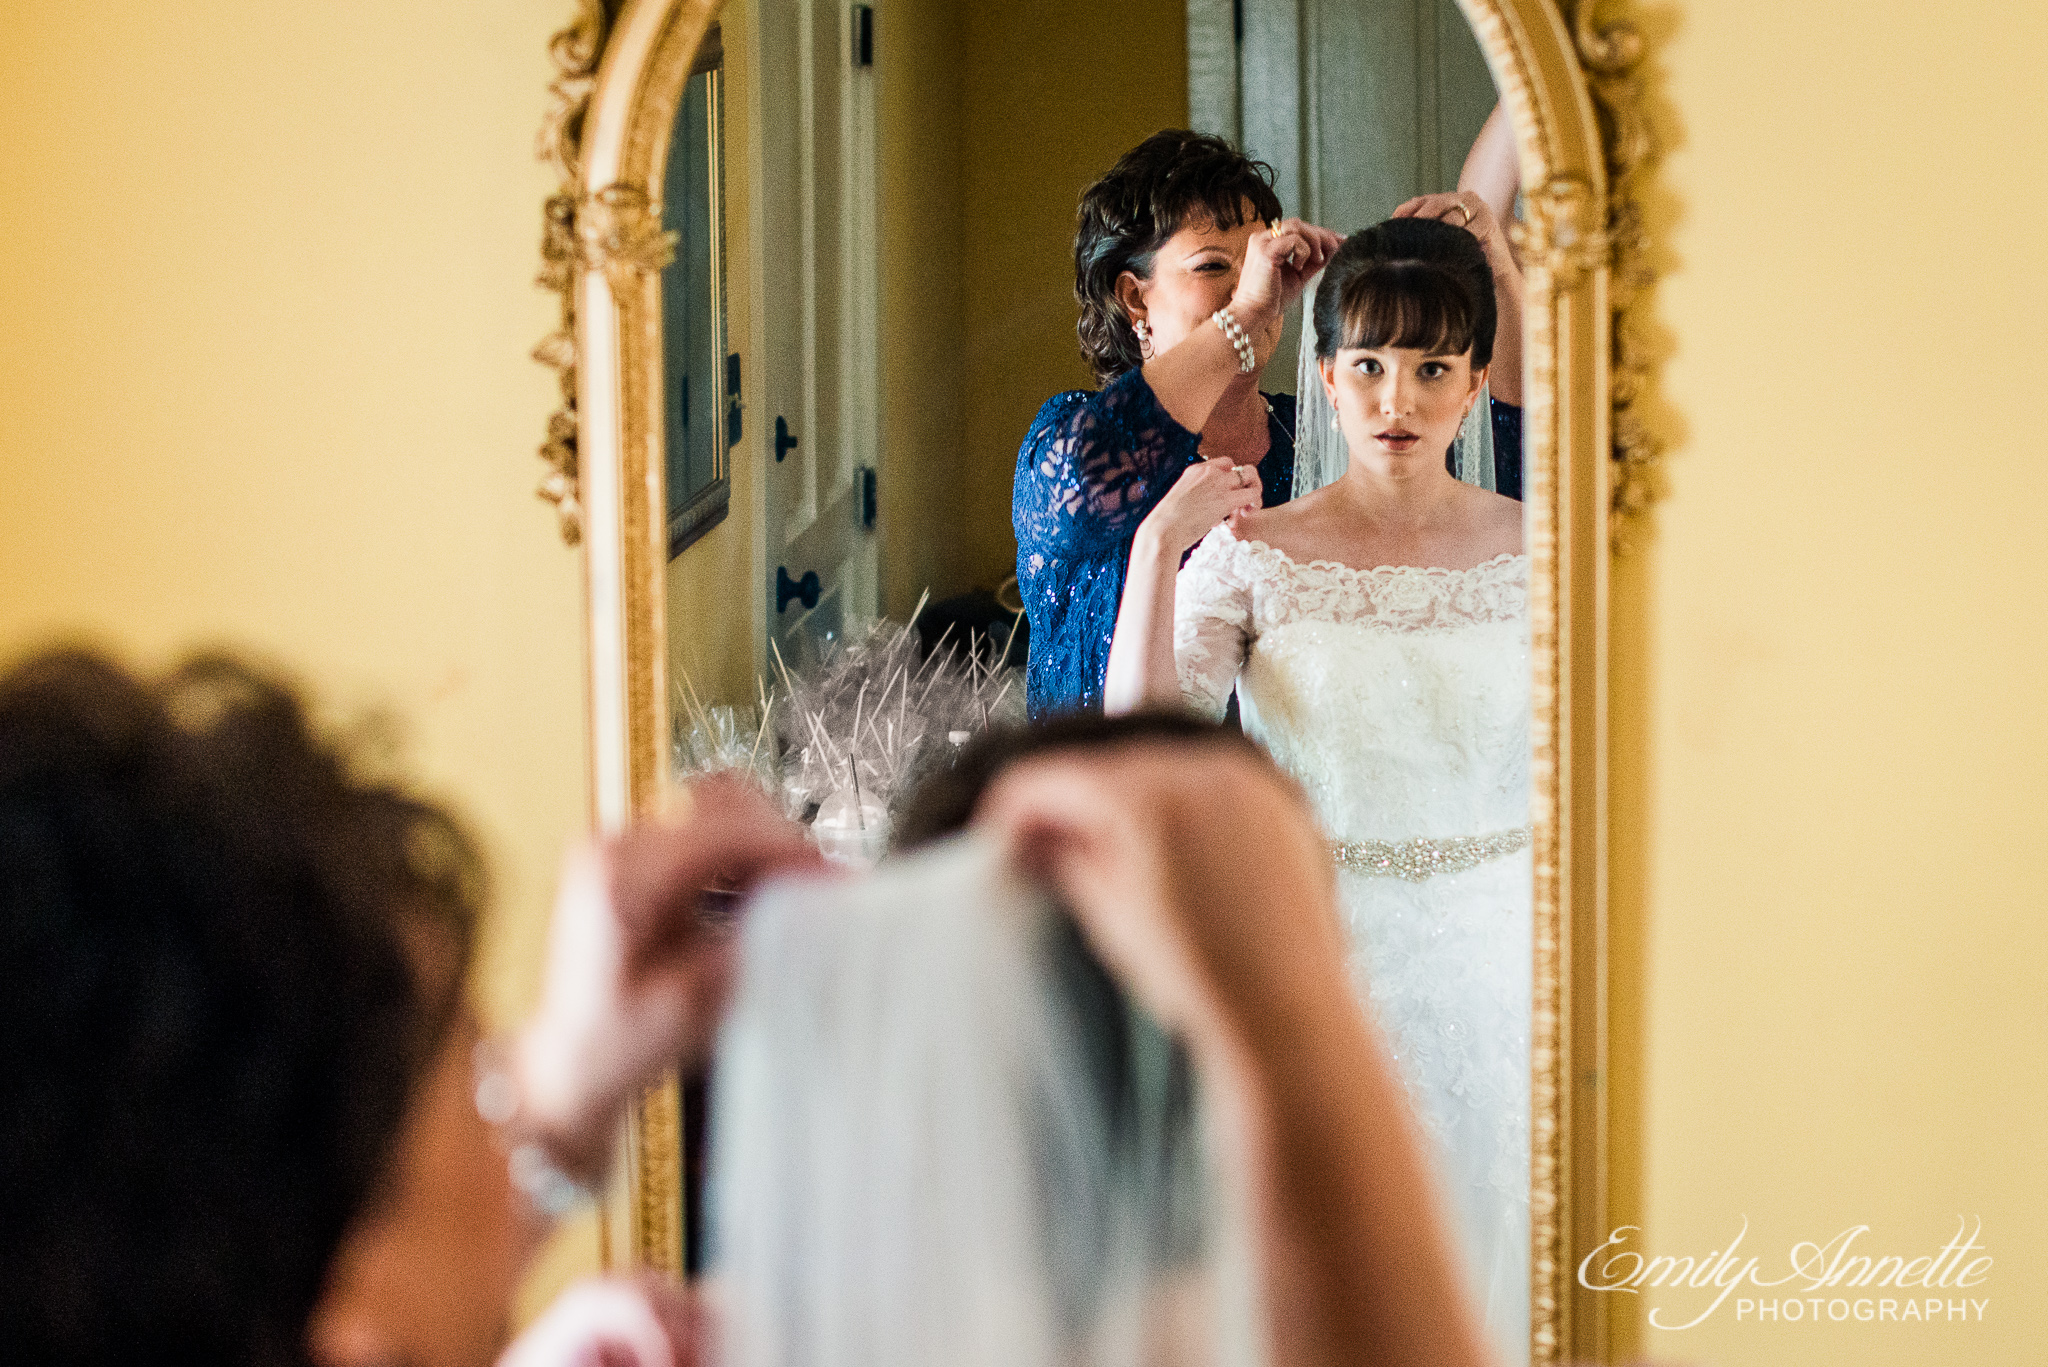 A bride looks through the mirror while the mother of the bride helps her put on her veil while getting ready before her wedding ceremony at Amber Grove near Richmond, Virginia